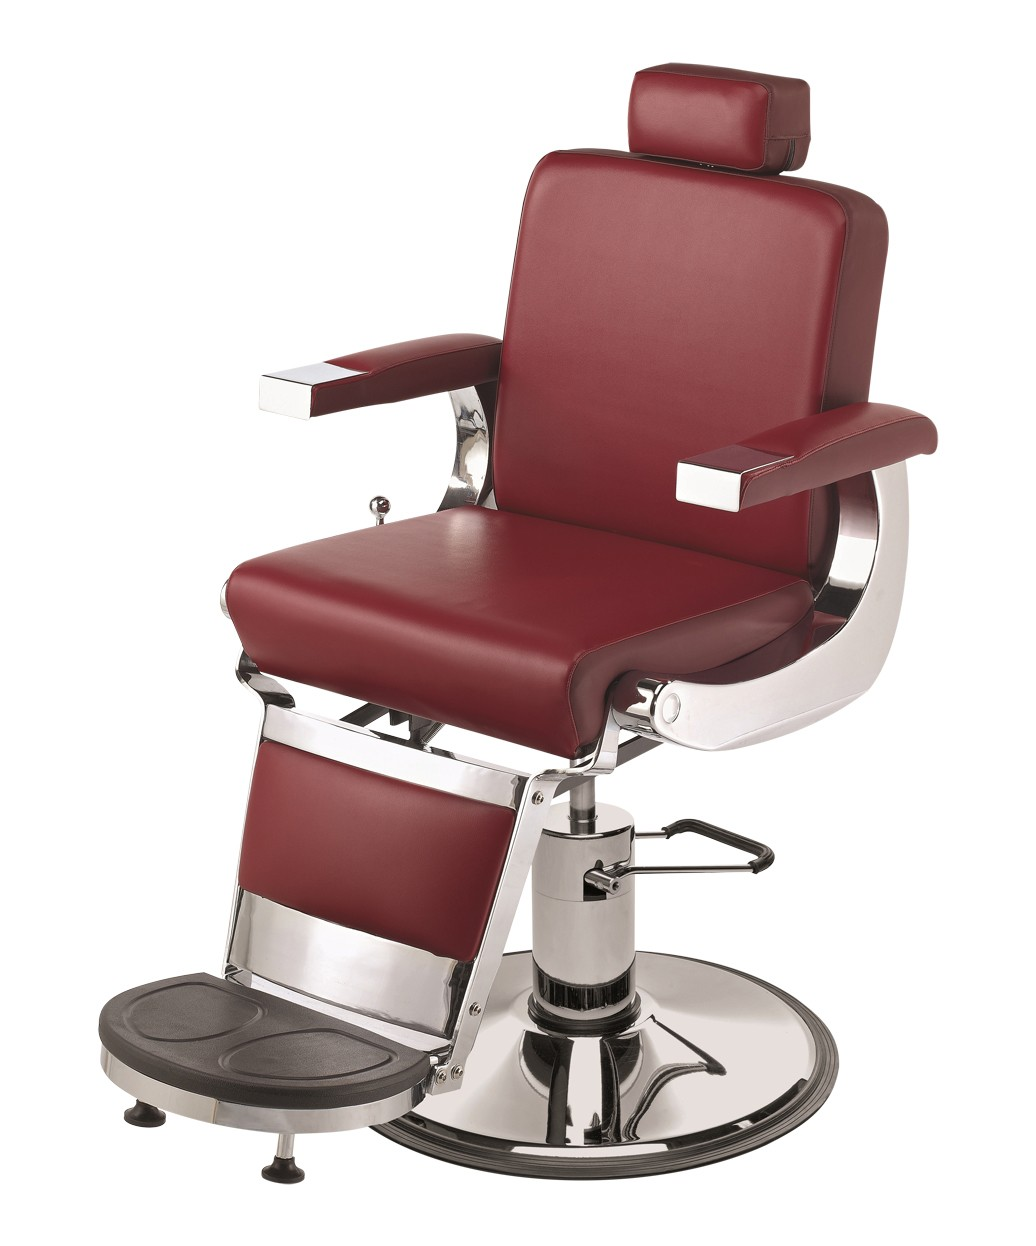 Old Fashioned Beauty Salon Chair